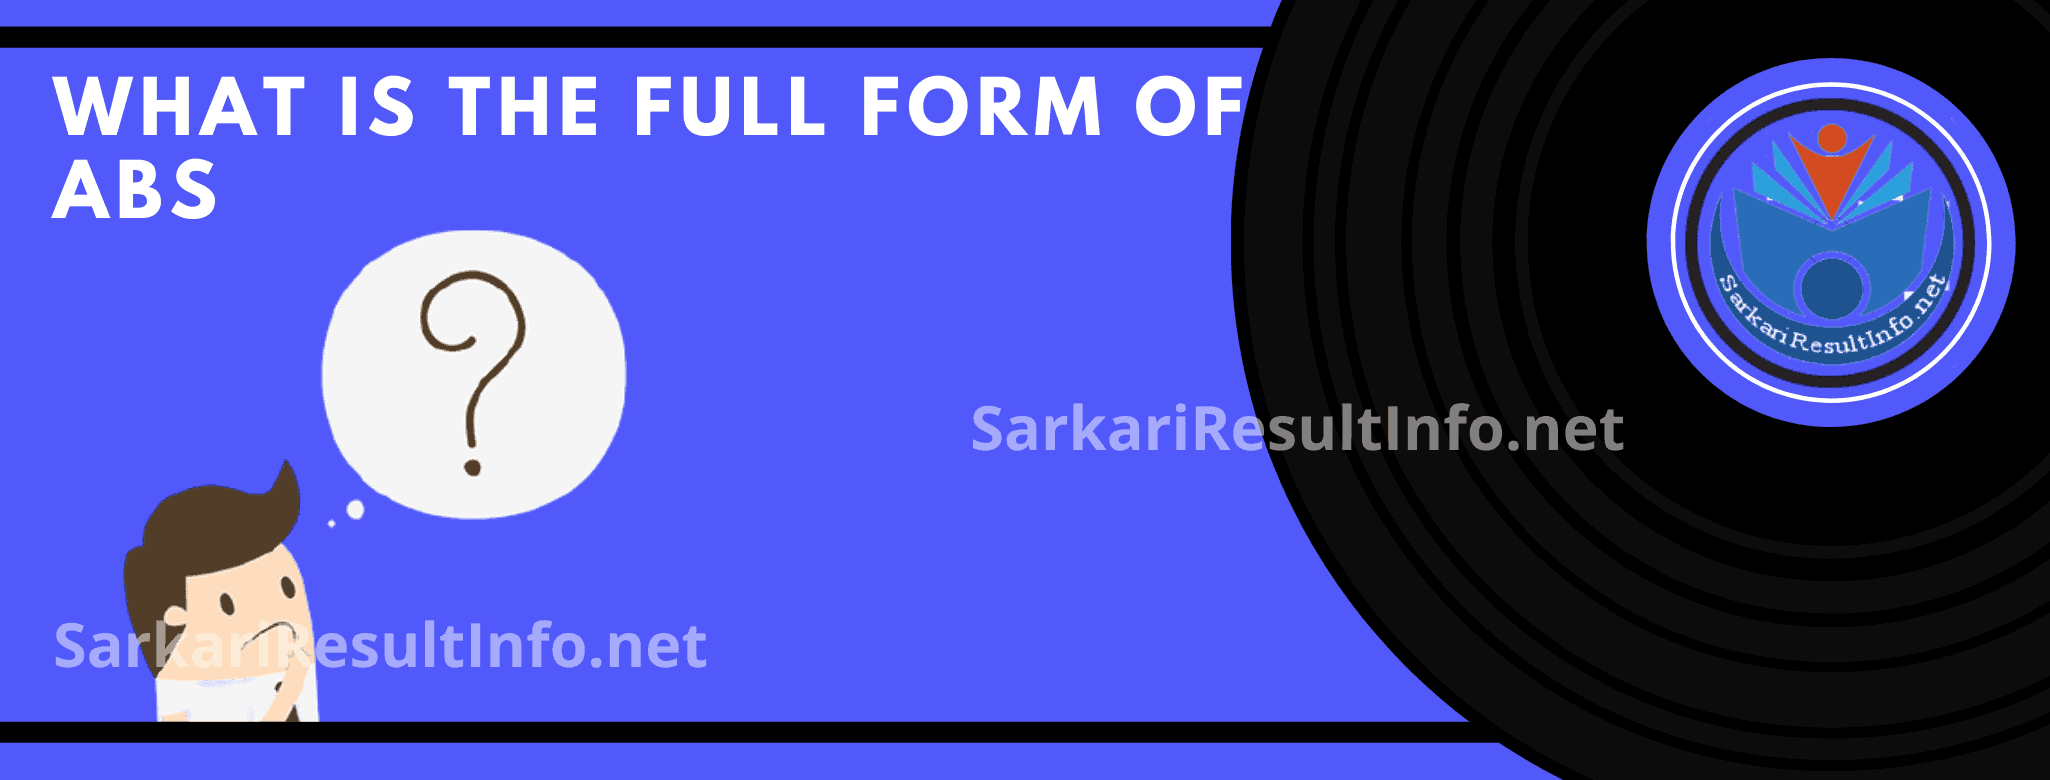 What is the full form of ABS - ABS Full form